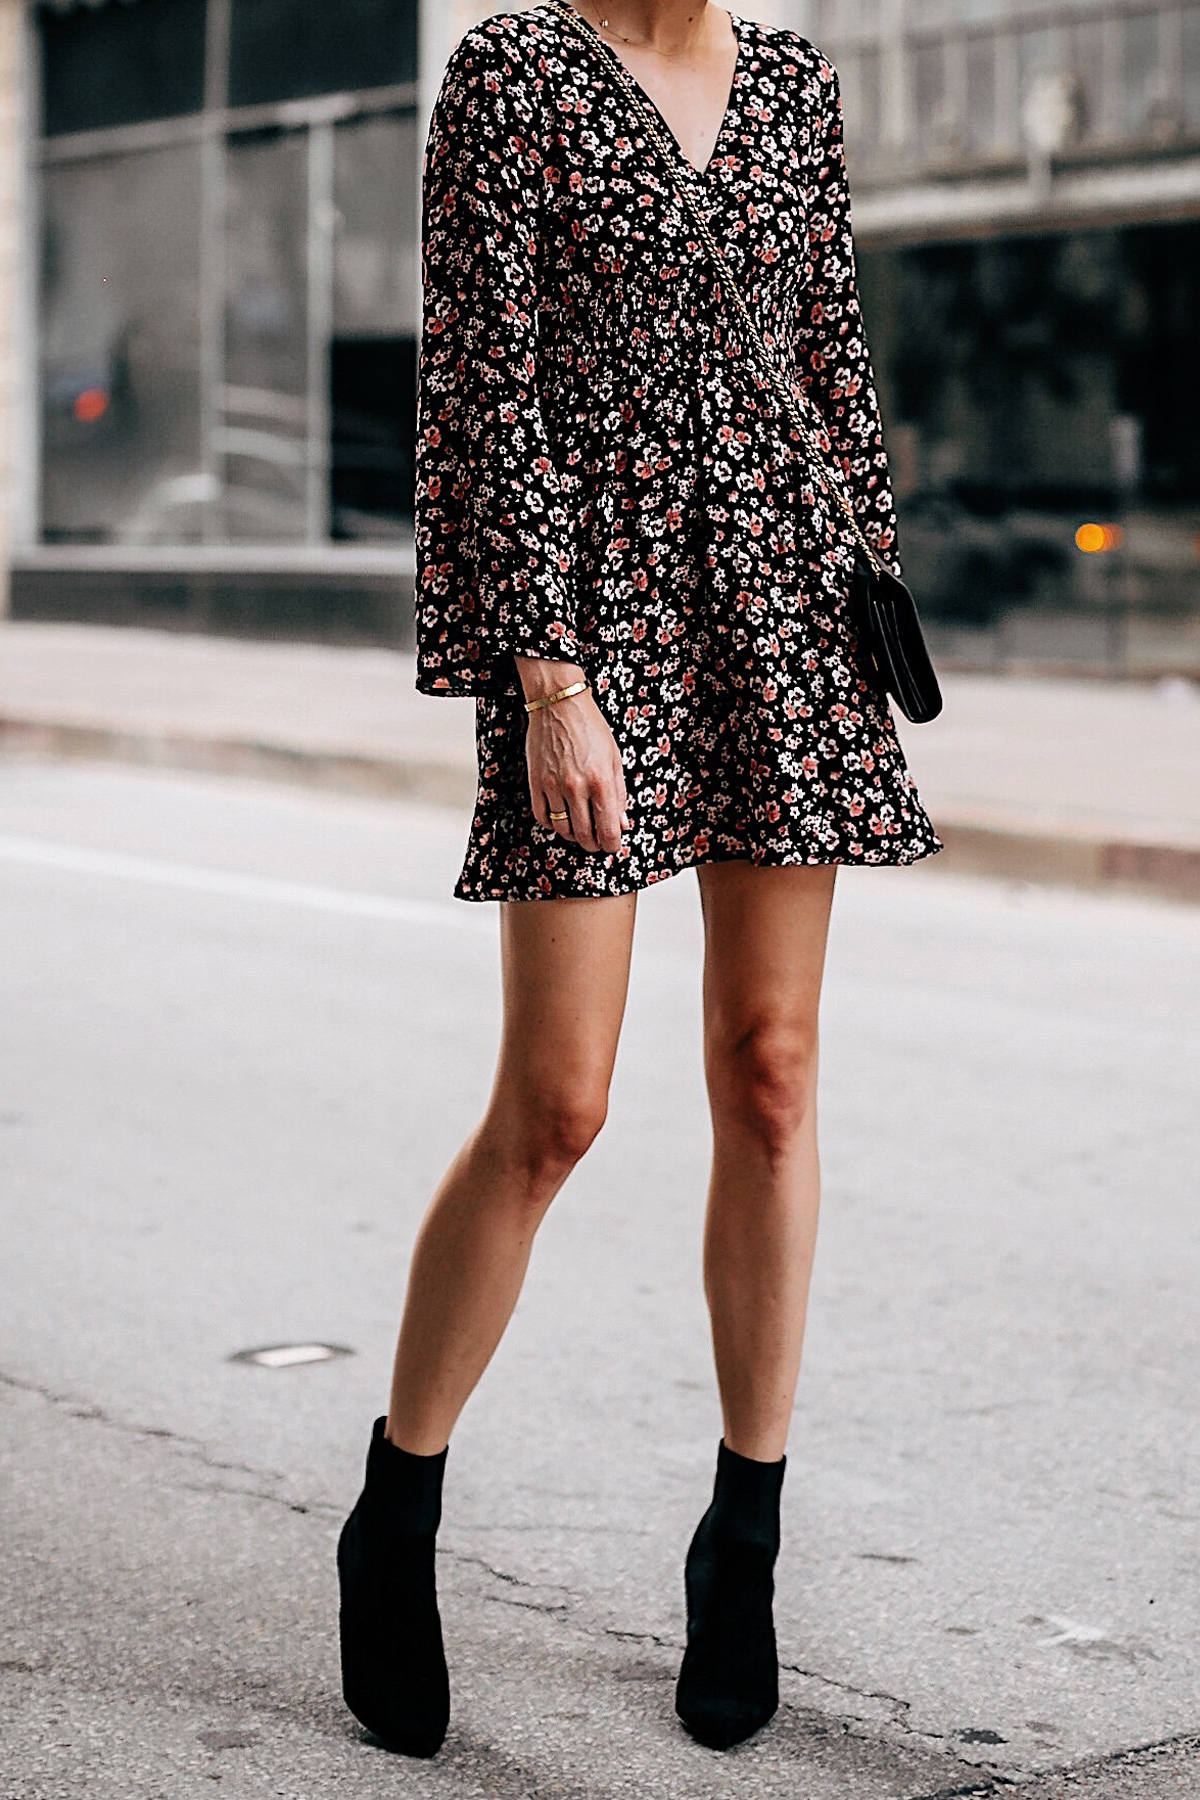 Woman Wearing Black Floral Long Sleeve Mini Dress Black Heeled Ankle Booties Fashion Jackson San Diego Fashion Blogger Street Style